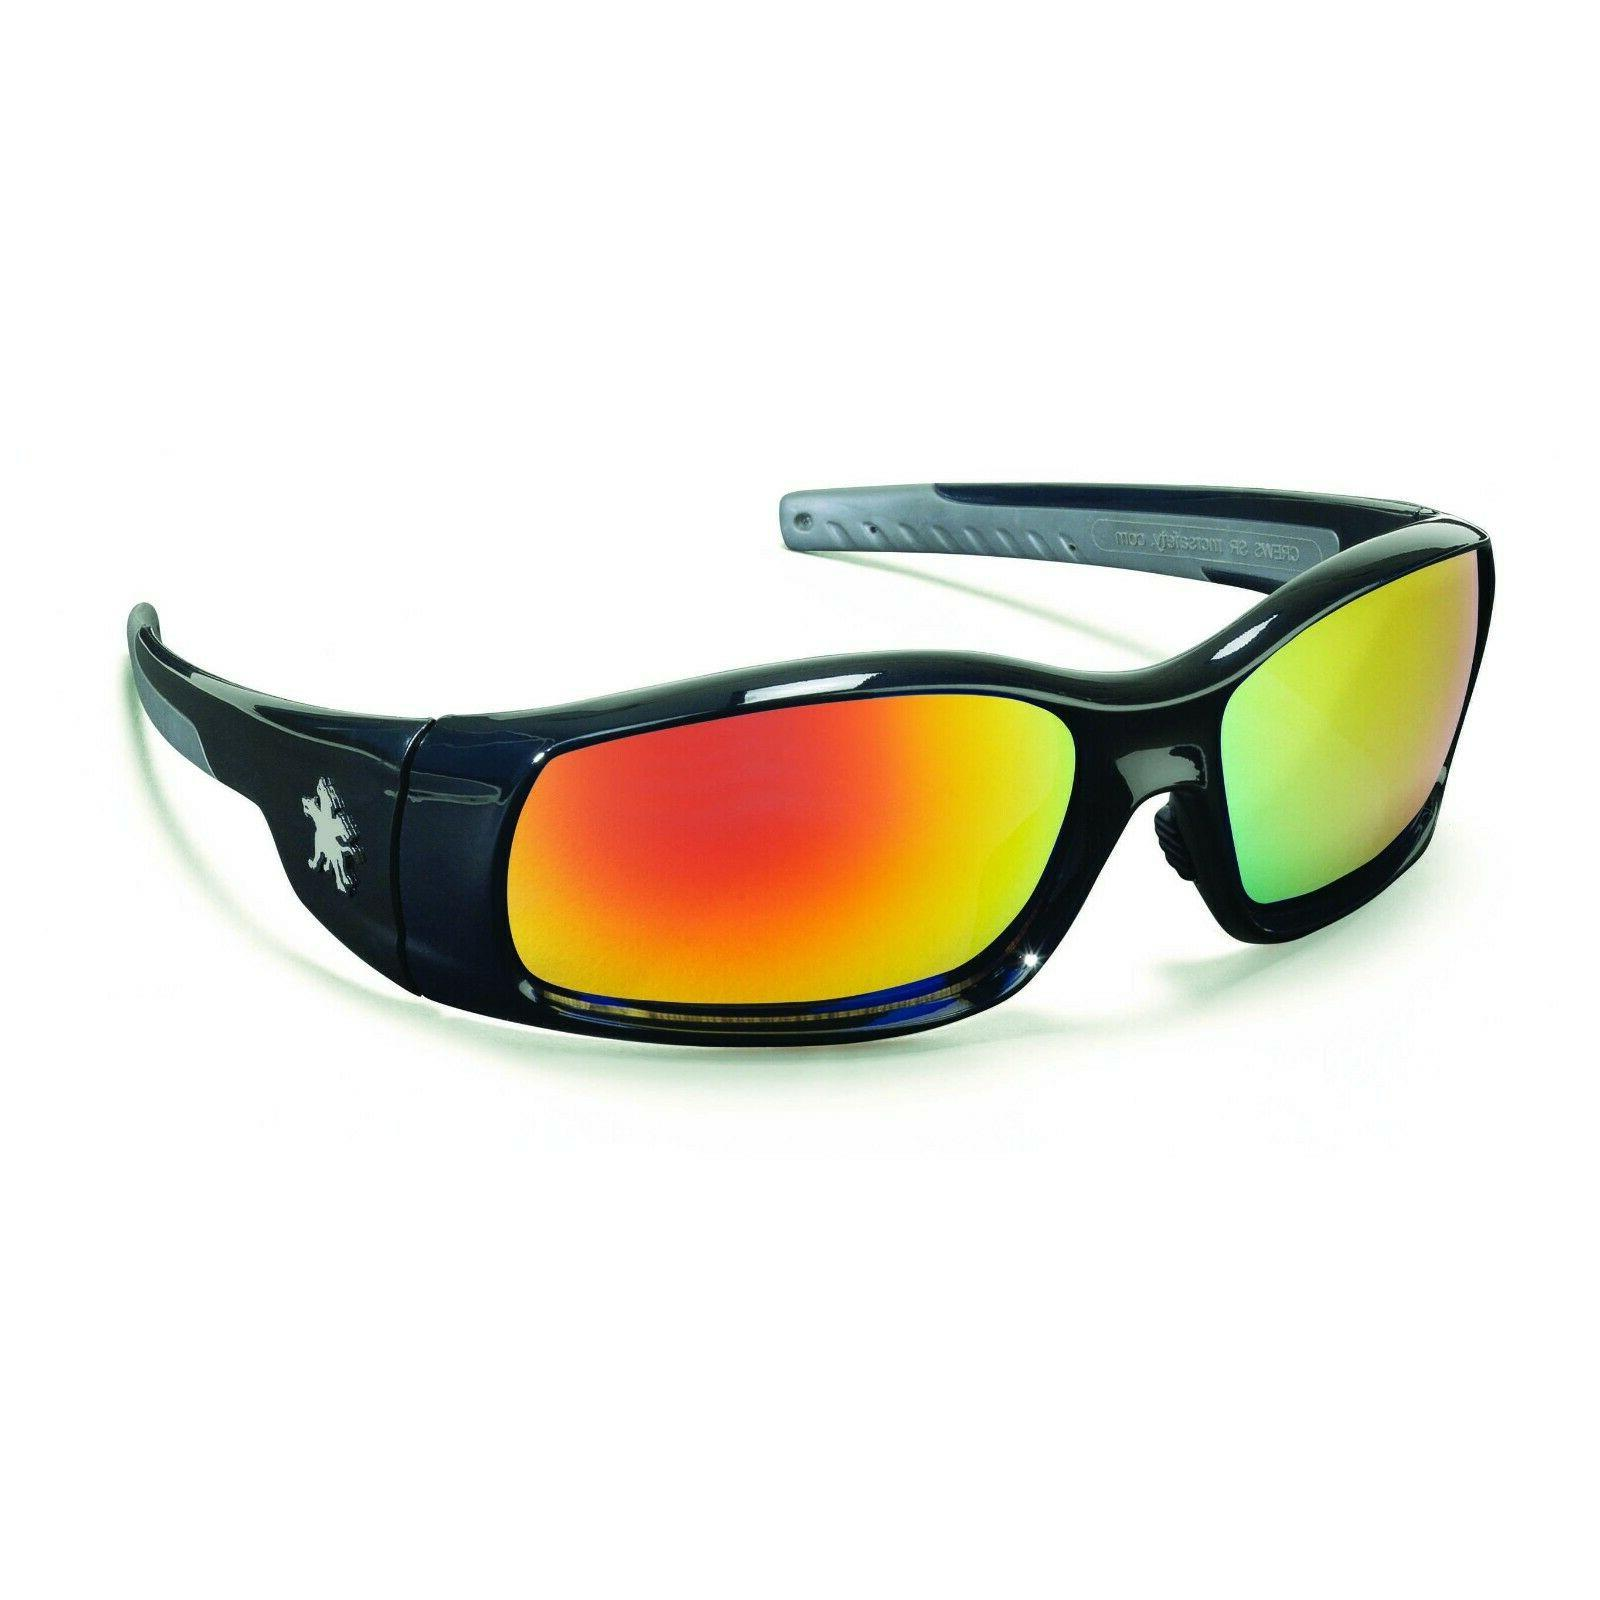 mcr swagger sport work sunglasses 1 pair